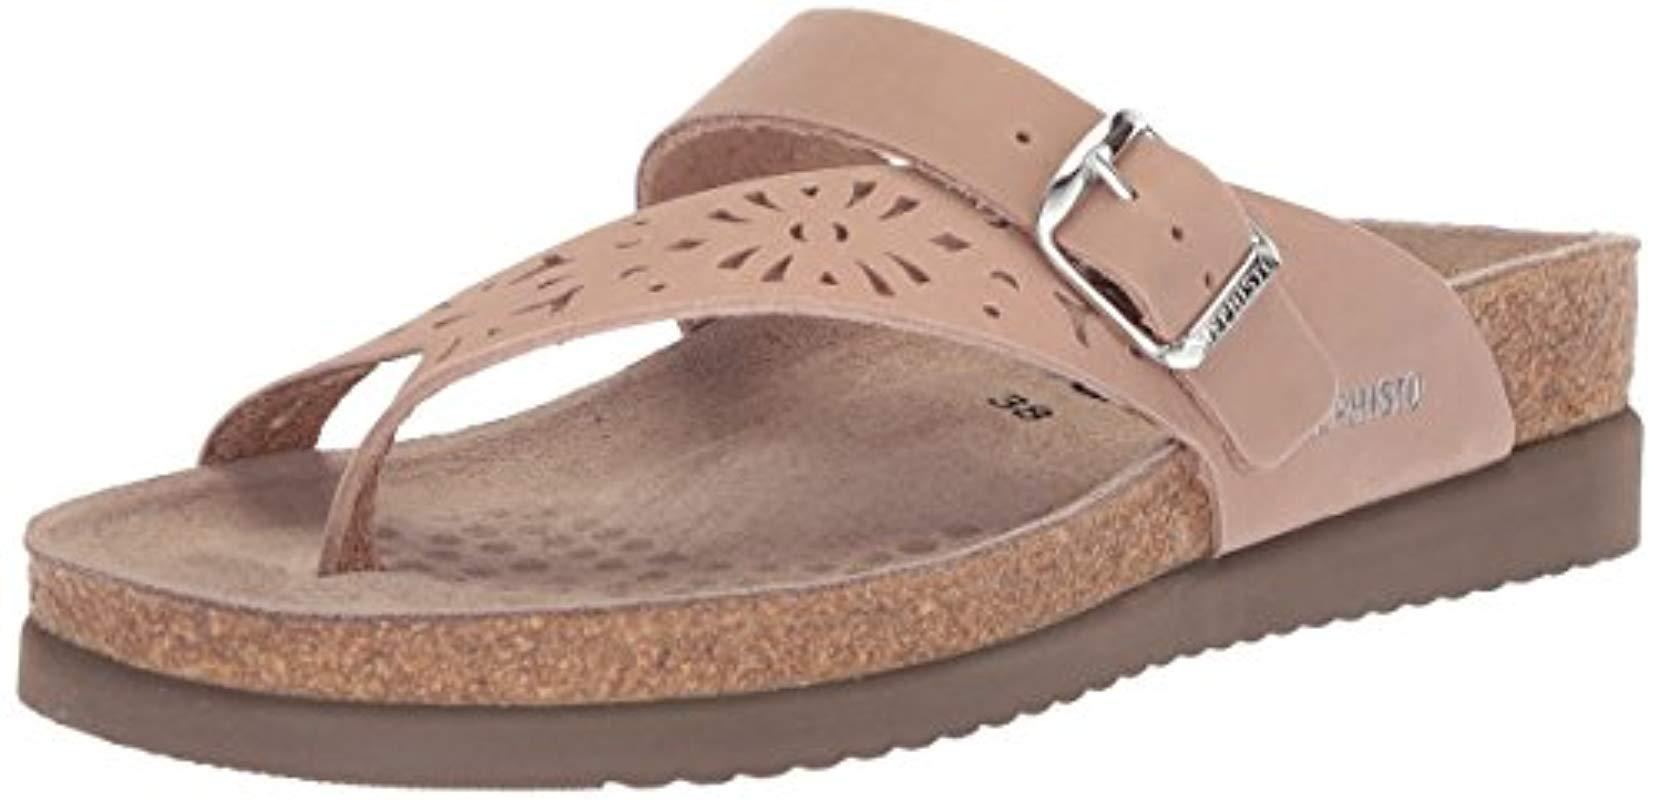 28428d3d0f09 Lyst - Mephisto Helen Thong Sandals in Brown - Save 1%